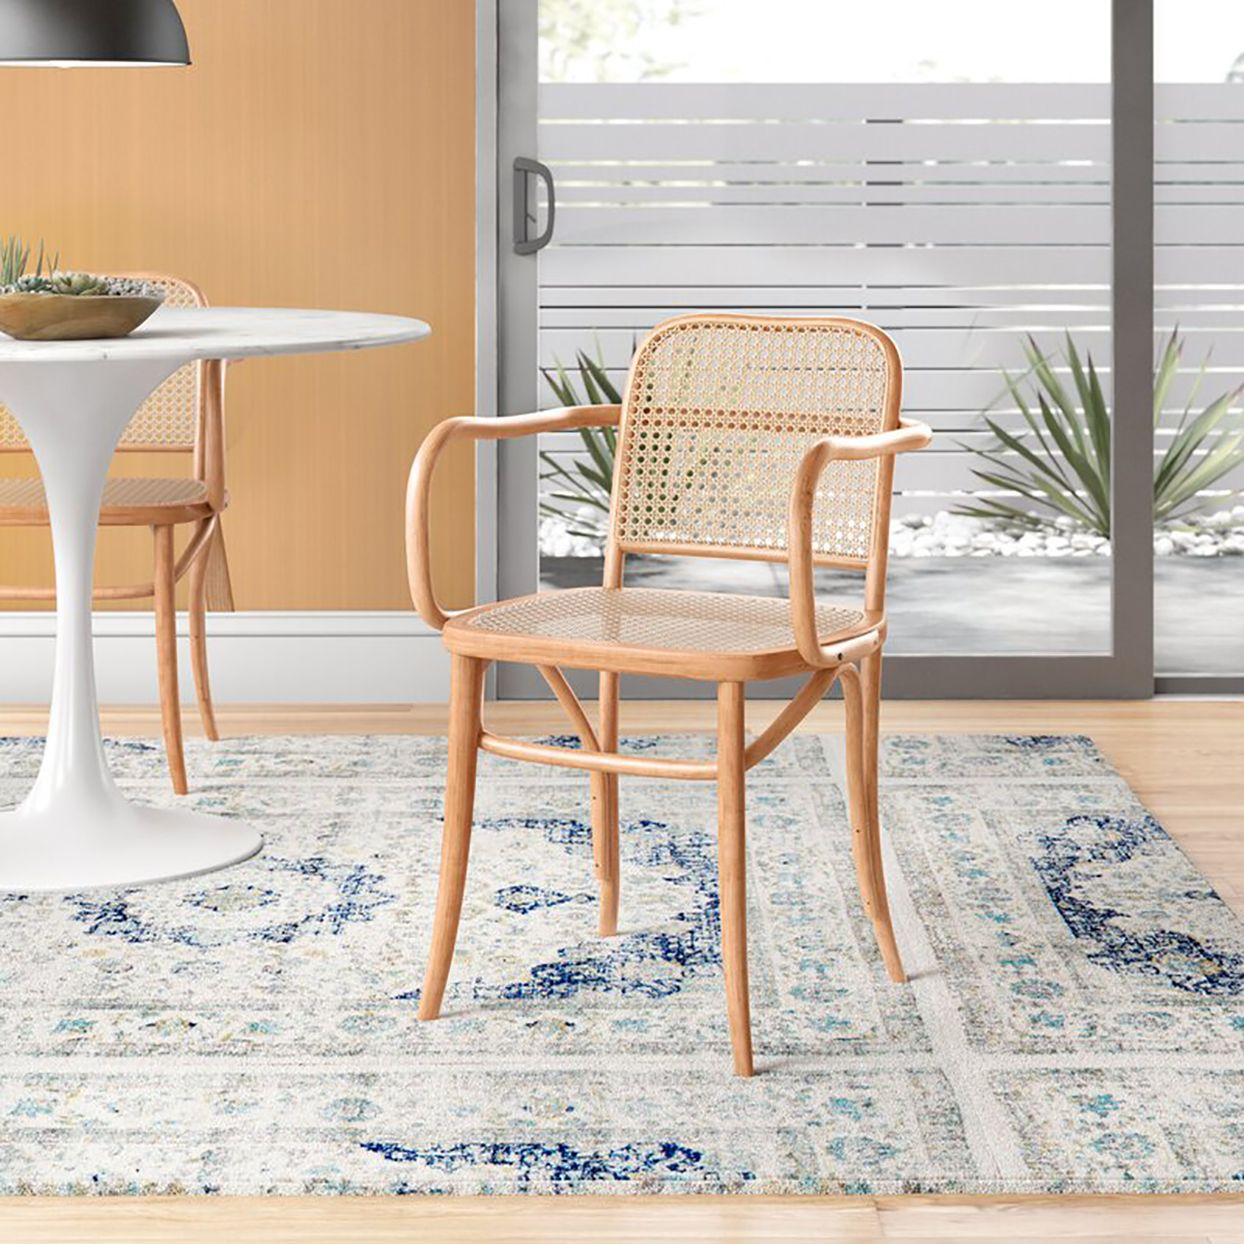 Cane Furniture Is One Of The Hottest Decor Trends This Year Solid Wood Dining Chairs Dining Chairs Cane Dining Chairs